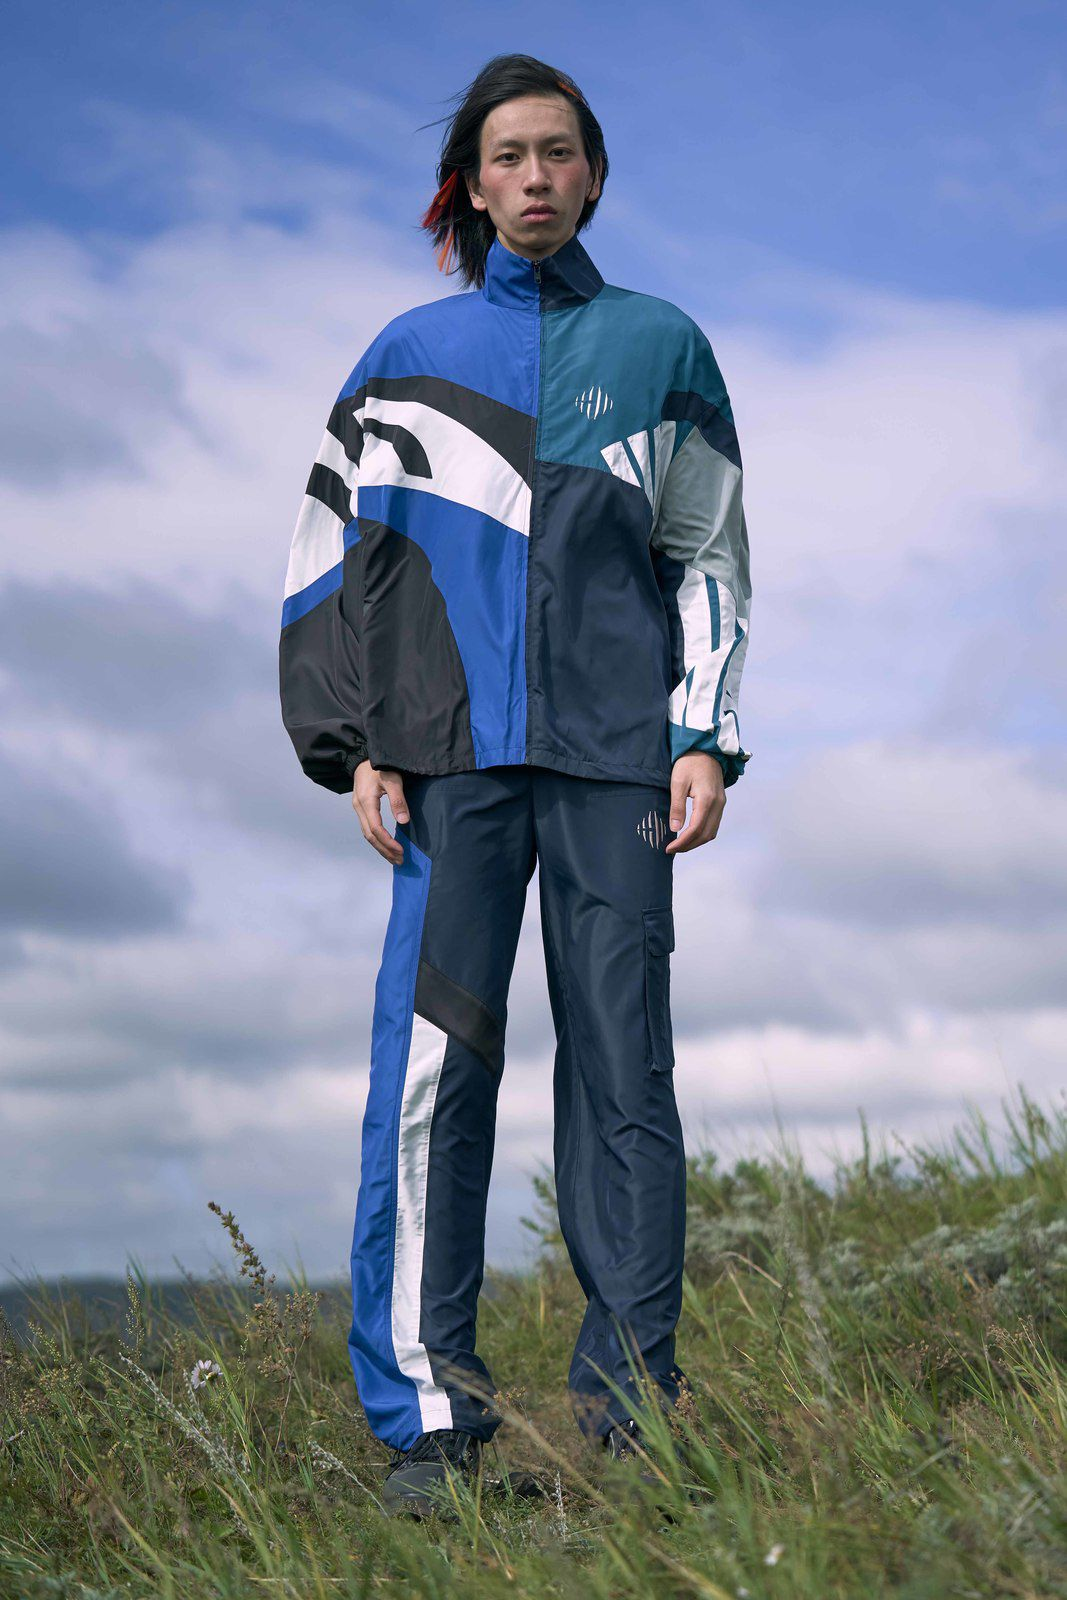 IN THE WILD MOUTAINS, MARRKNULL SPRING/SUMMER 2021 COLLECTION